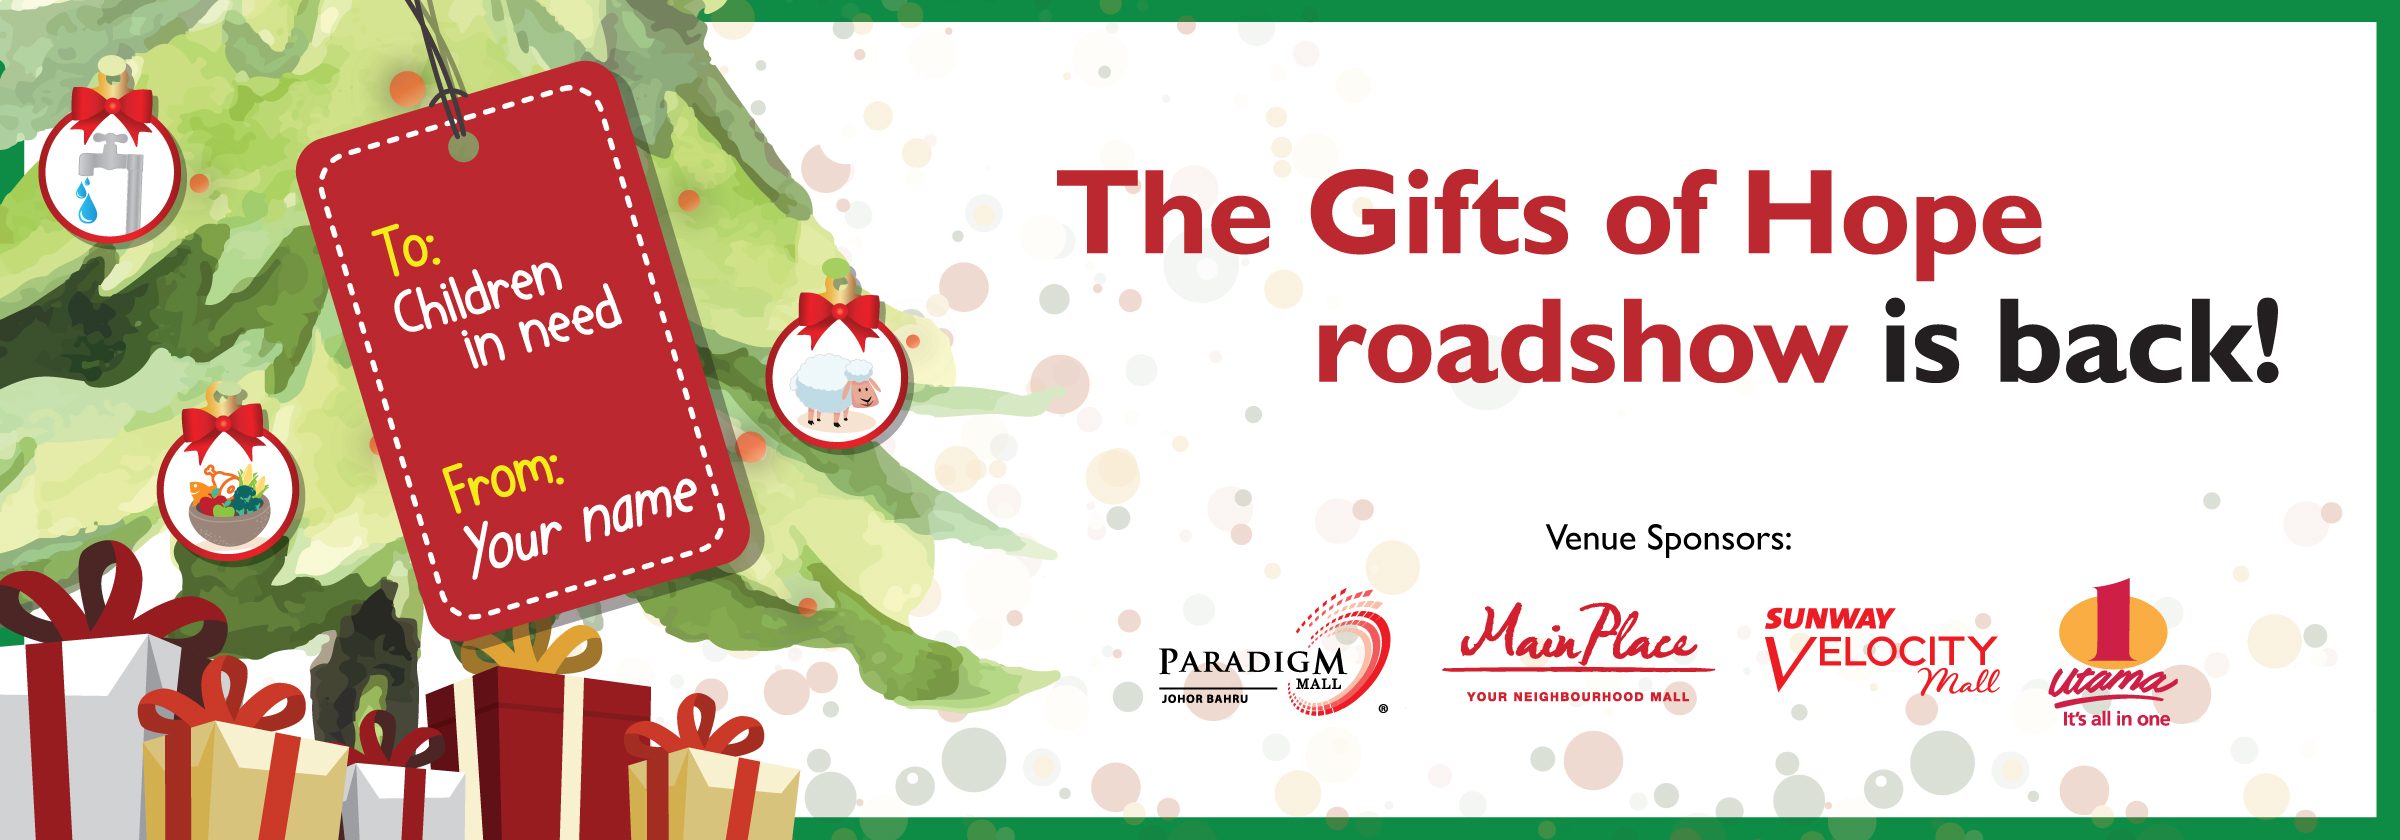 The Gifts of Hope roadshow is back in Klang Valley's shopping malls!